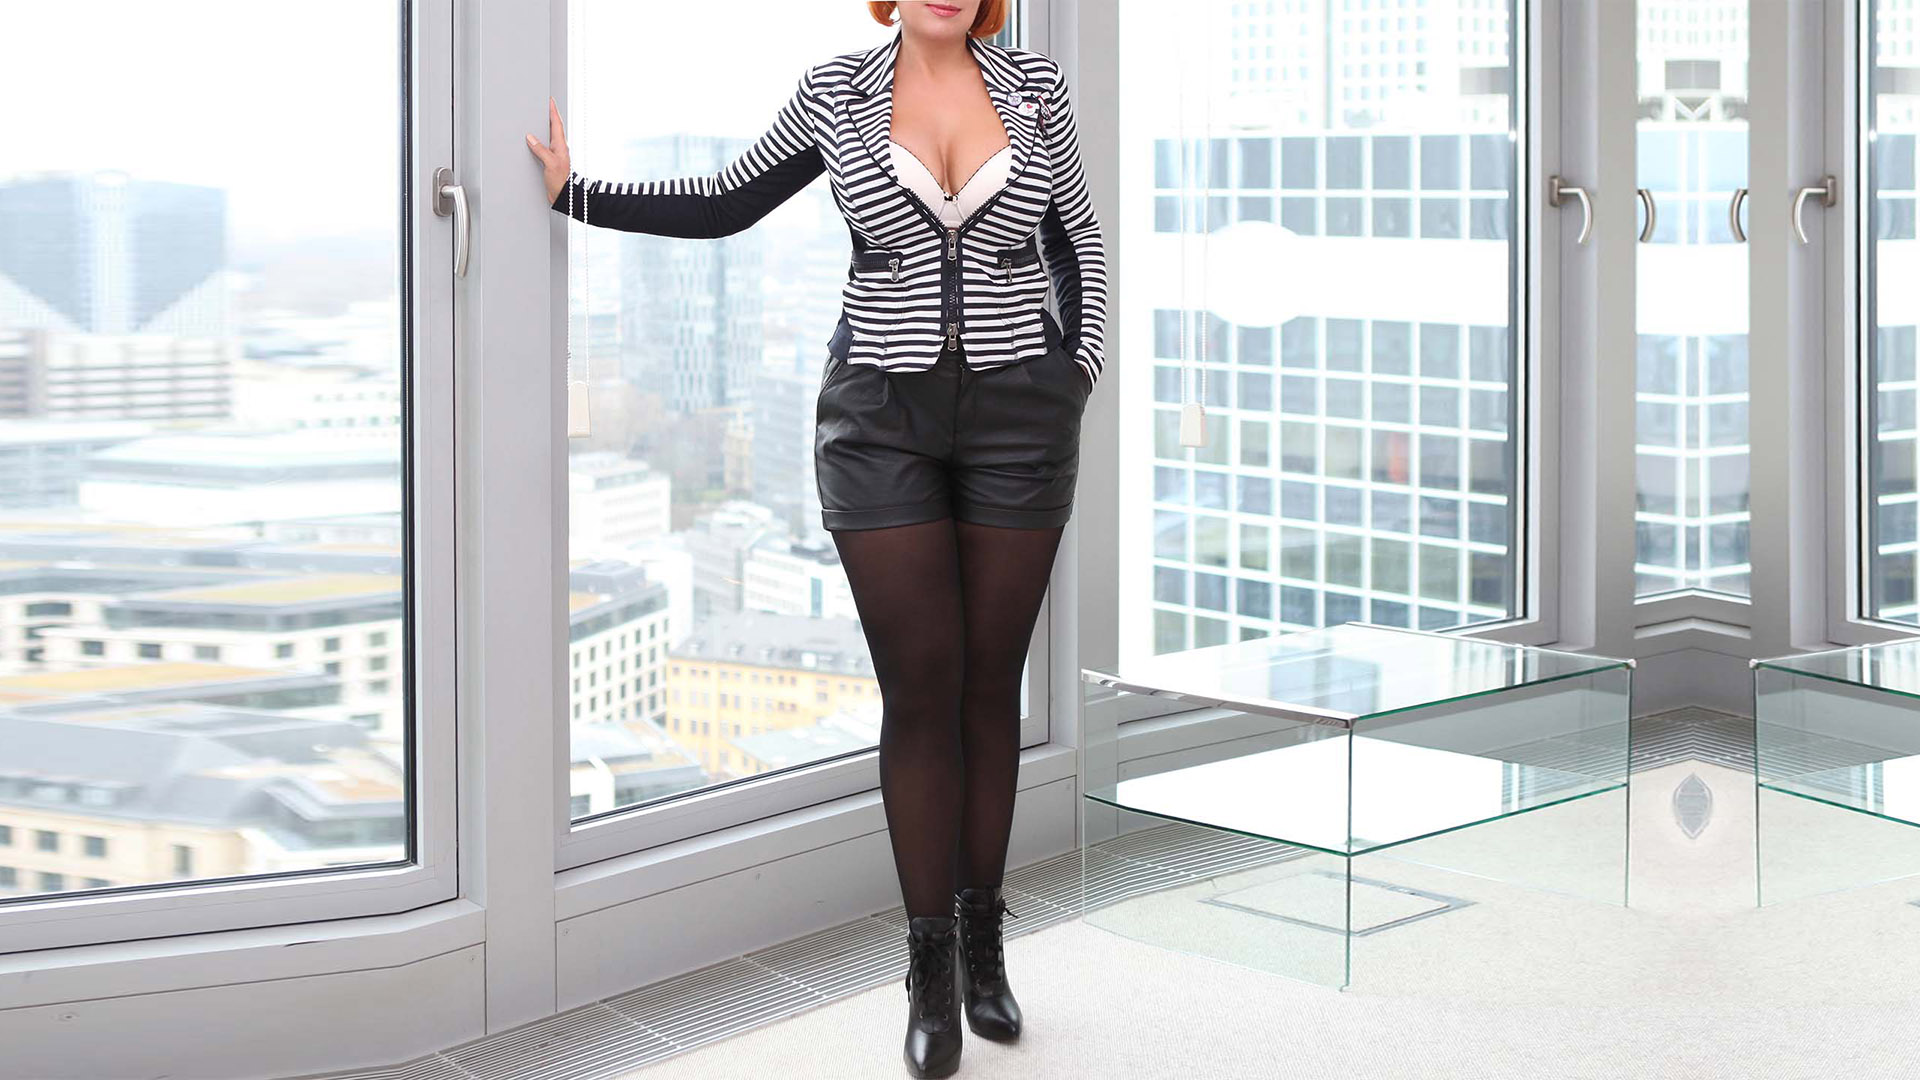 Sofia BBW Escort deluxe in sexy secretary look in shorts and nylons, with a large bust in a wide neckline standing at the window